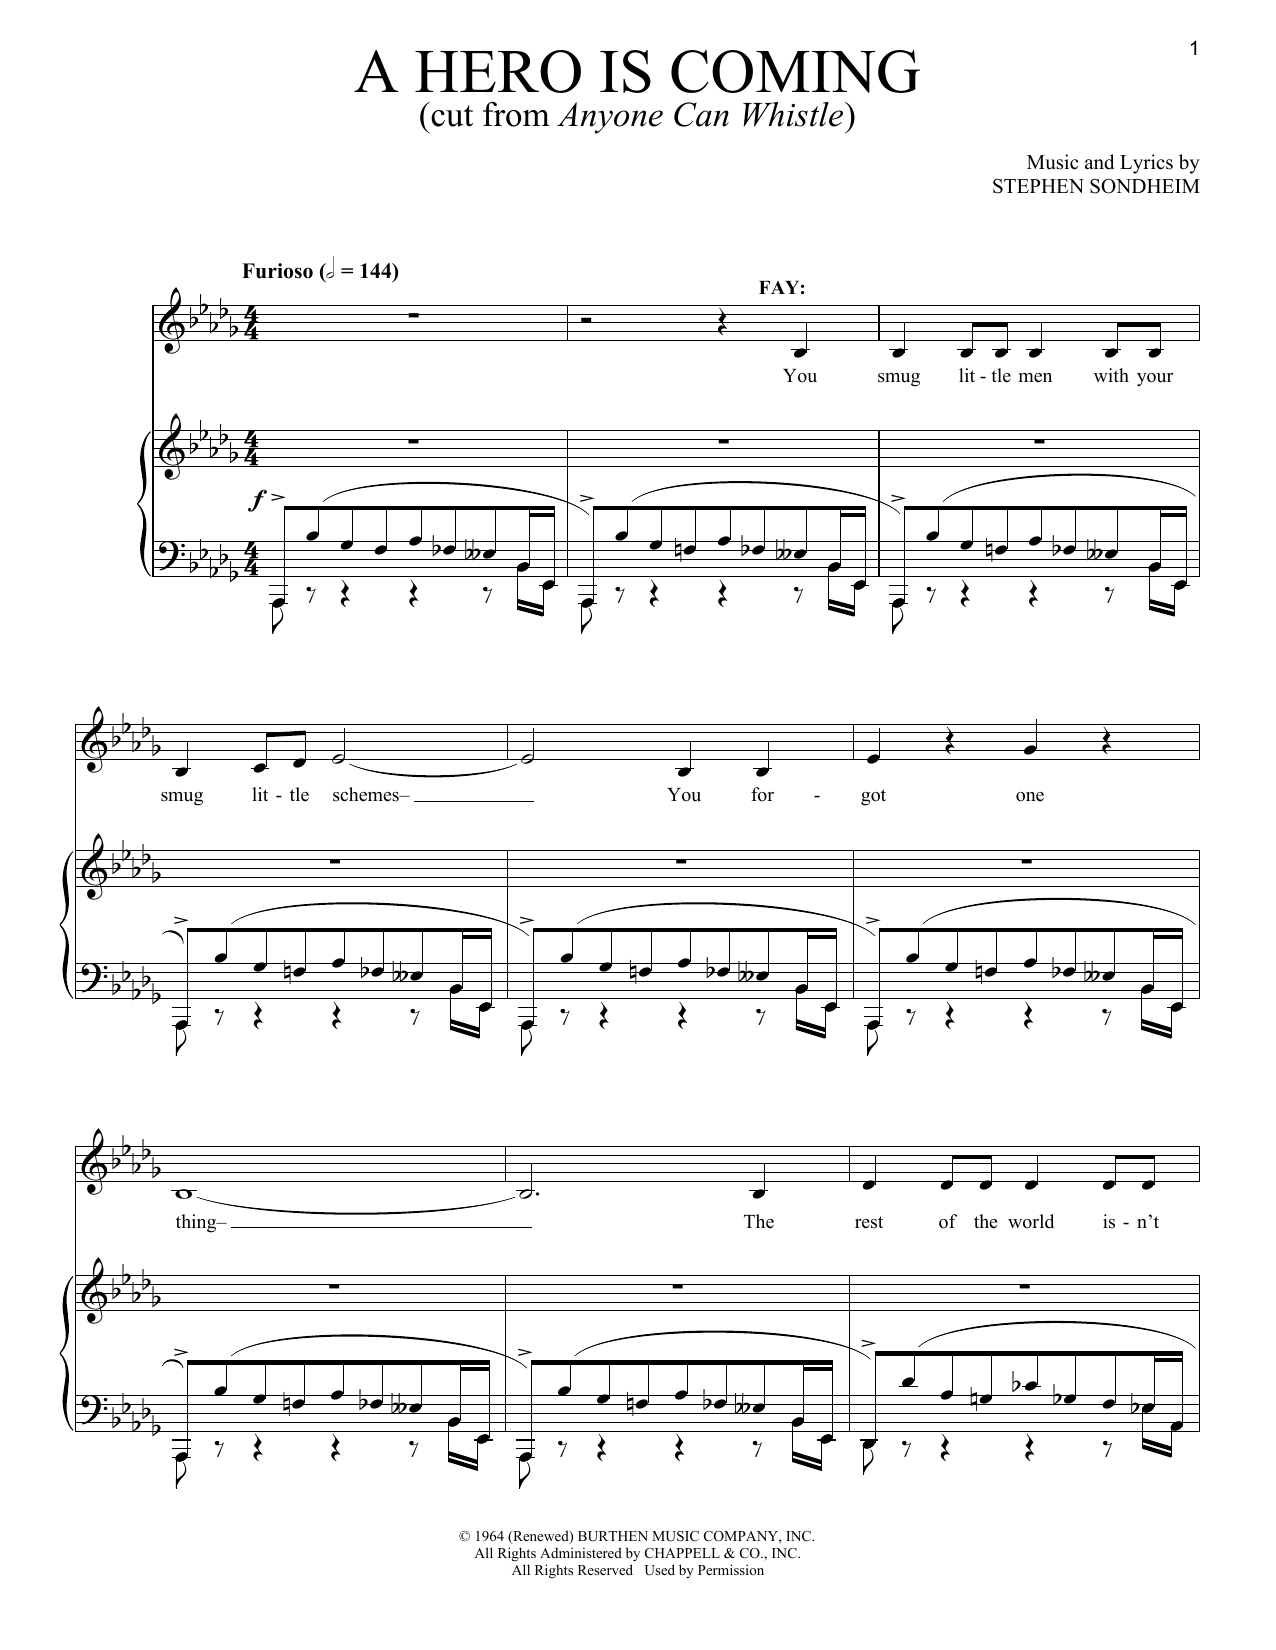 Stephen Sondheim A Hero Is Coming sheet music notes and chords. Download Printable PDF.